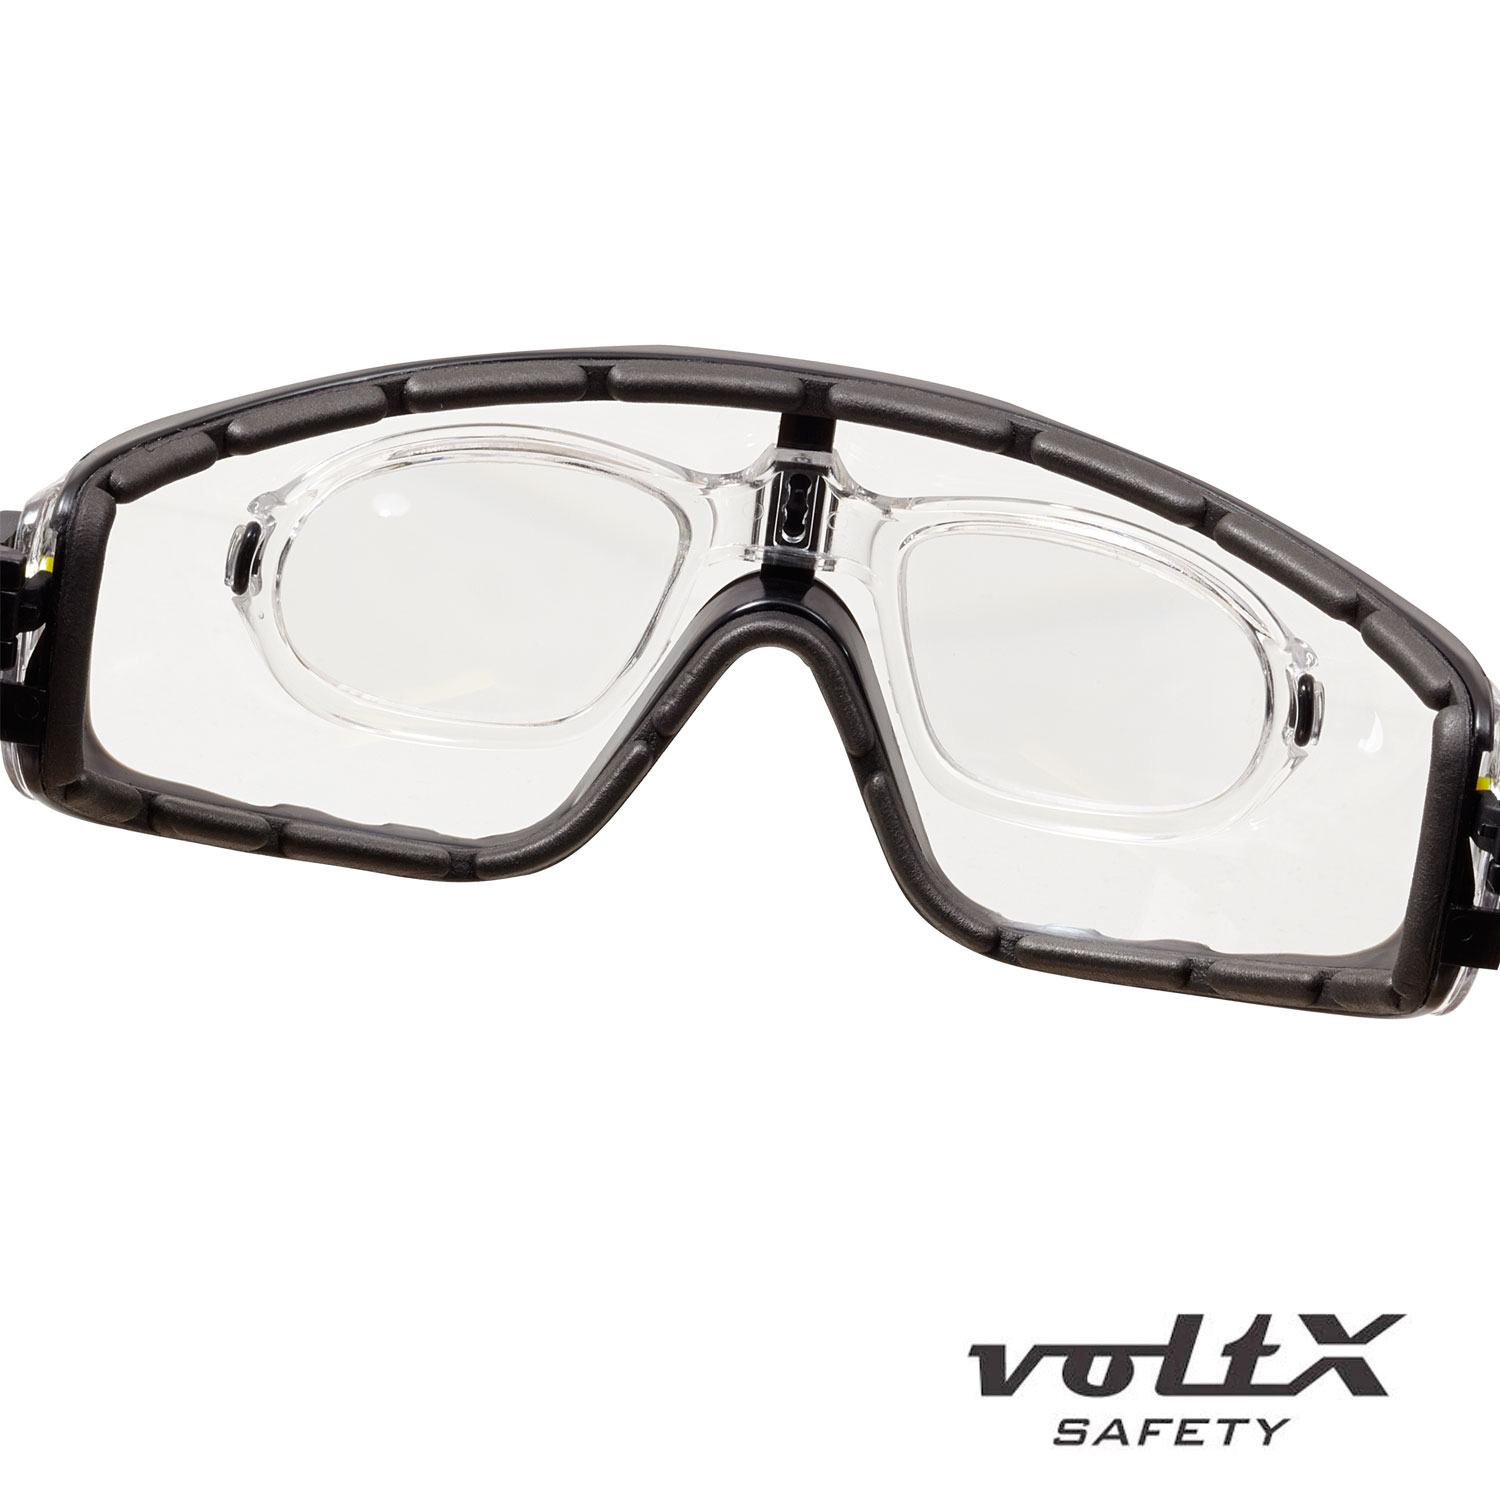 4853a6e28d5f www.lesbauxdeprovence.com - Trade - Full Lens Reading Safety Glasses